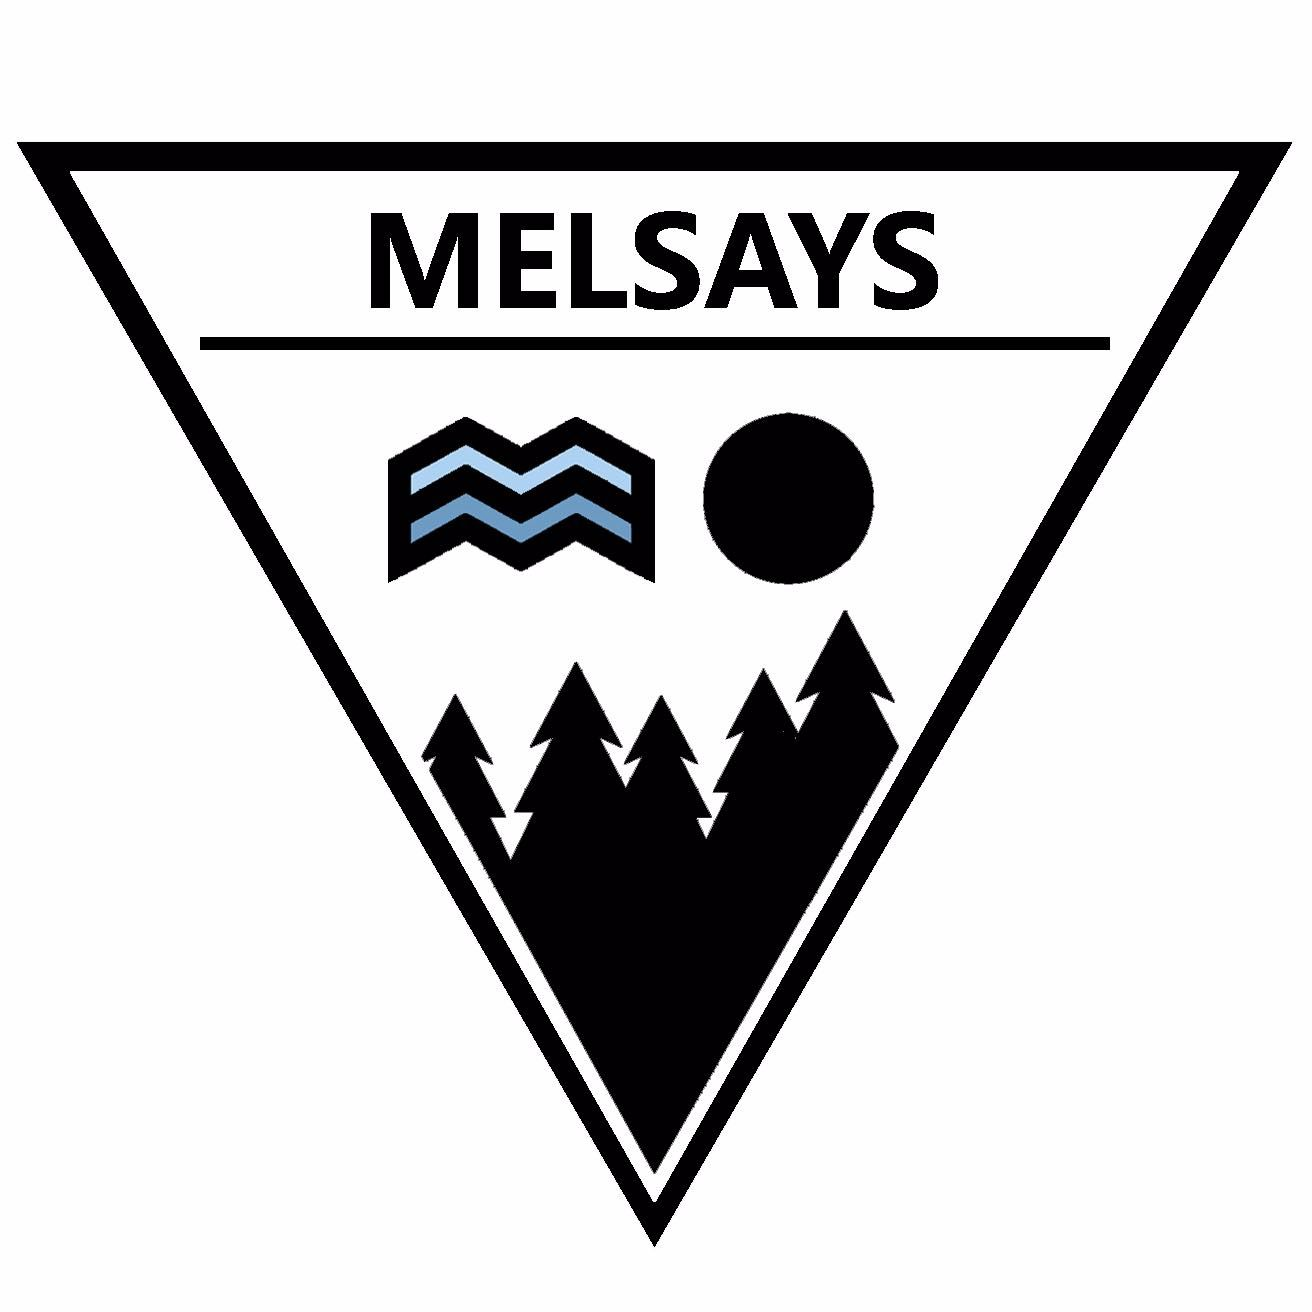 MELSAYS PODCAST - EP. 1 - Micayla Gatto